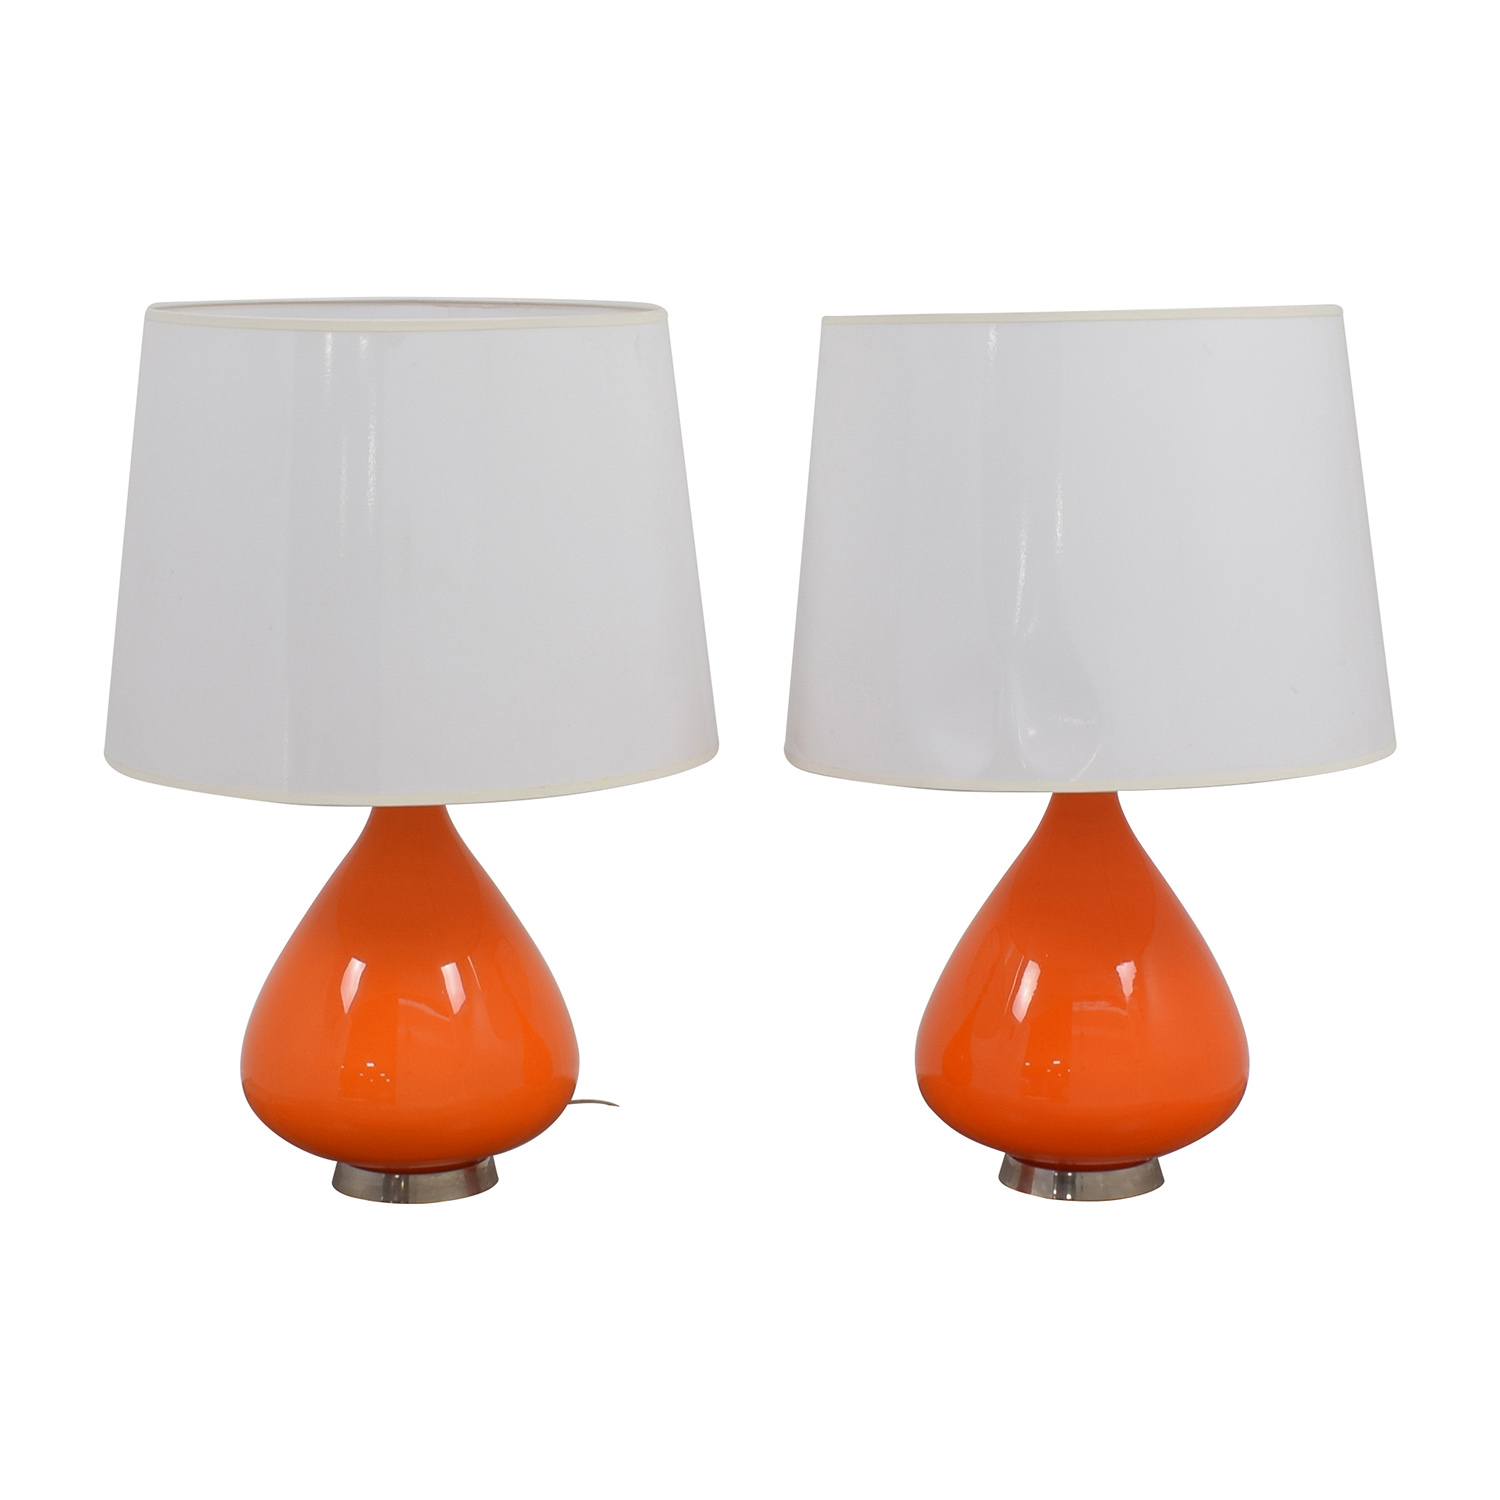 at modern caracas modernist lamps lighting jonathan lamp adler floorlamp floor